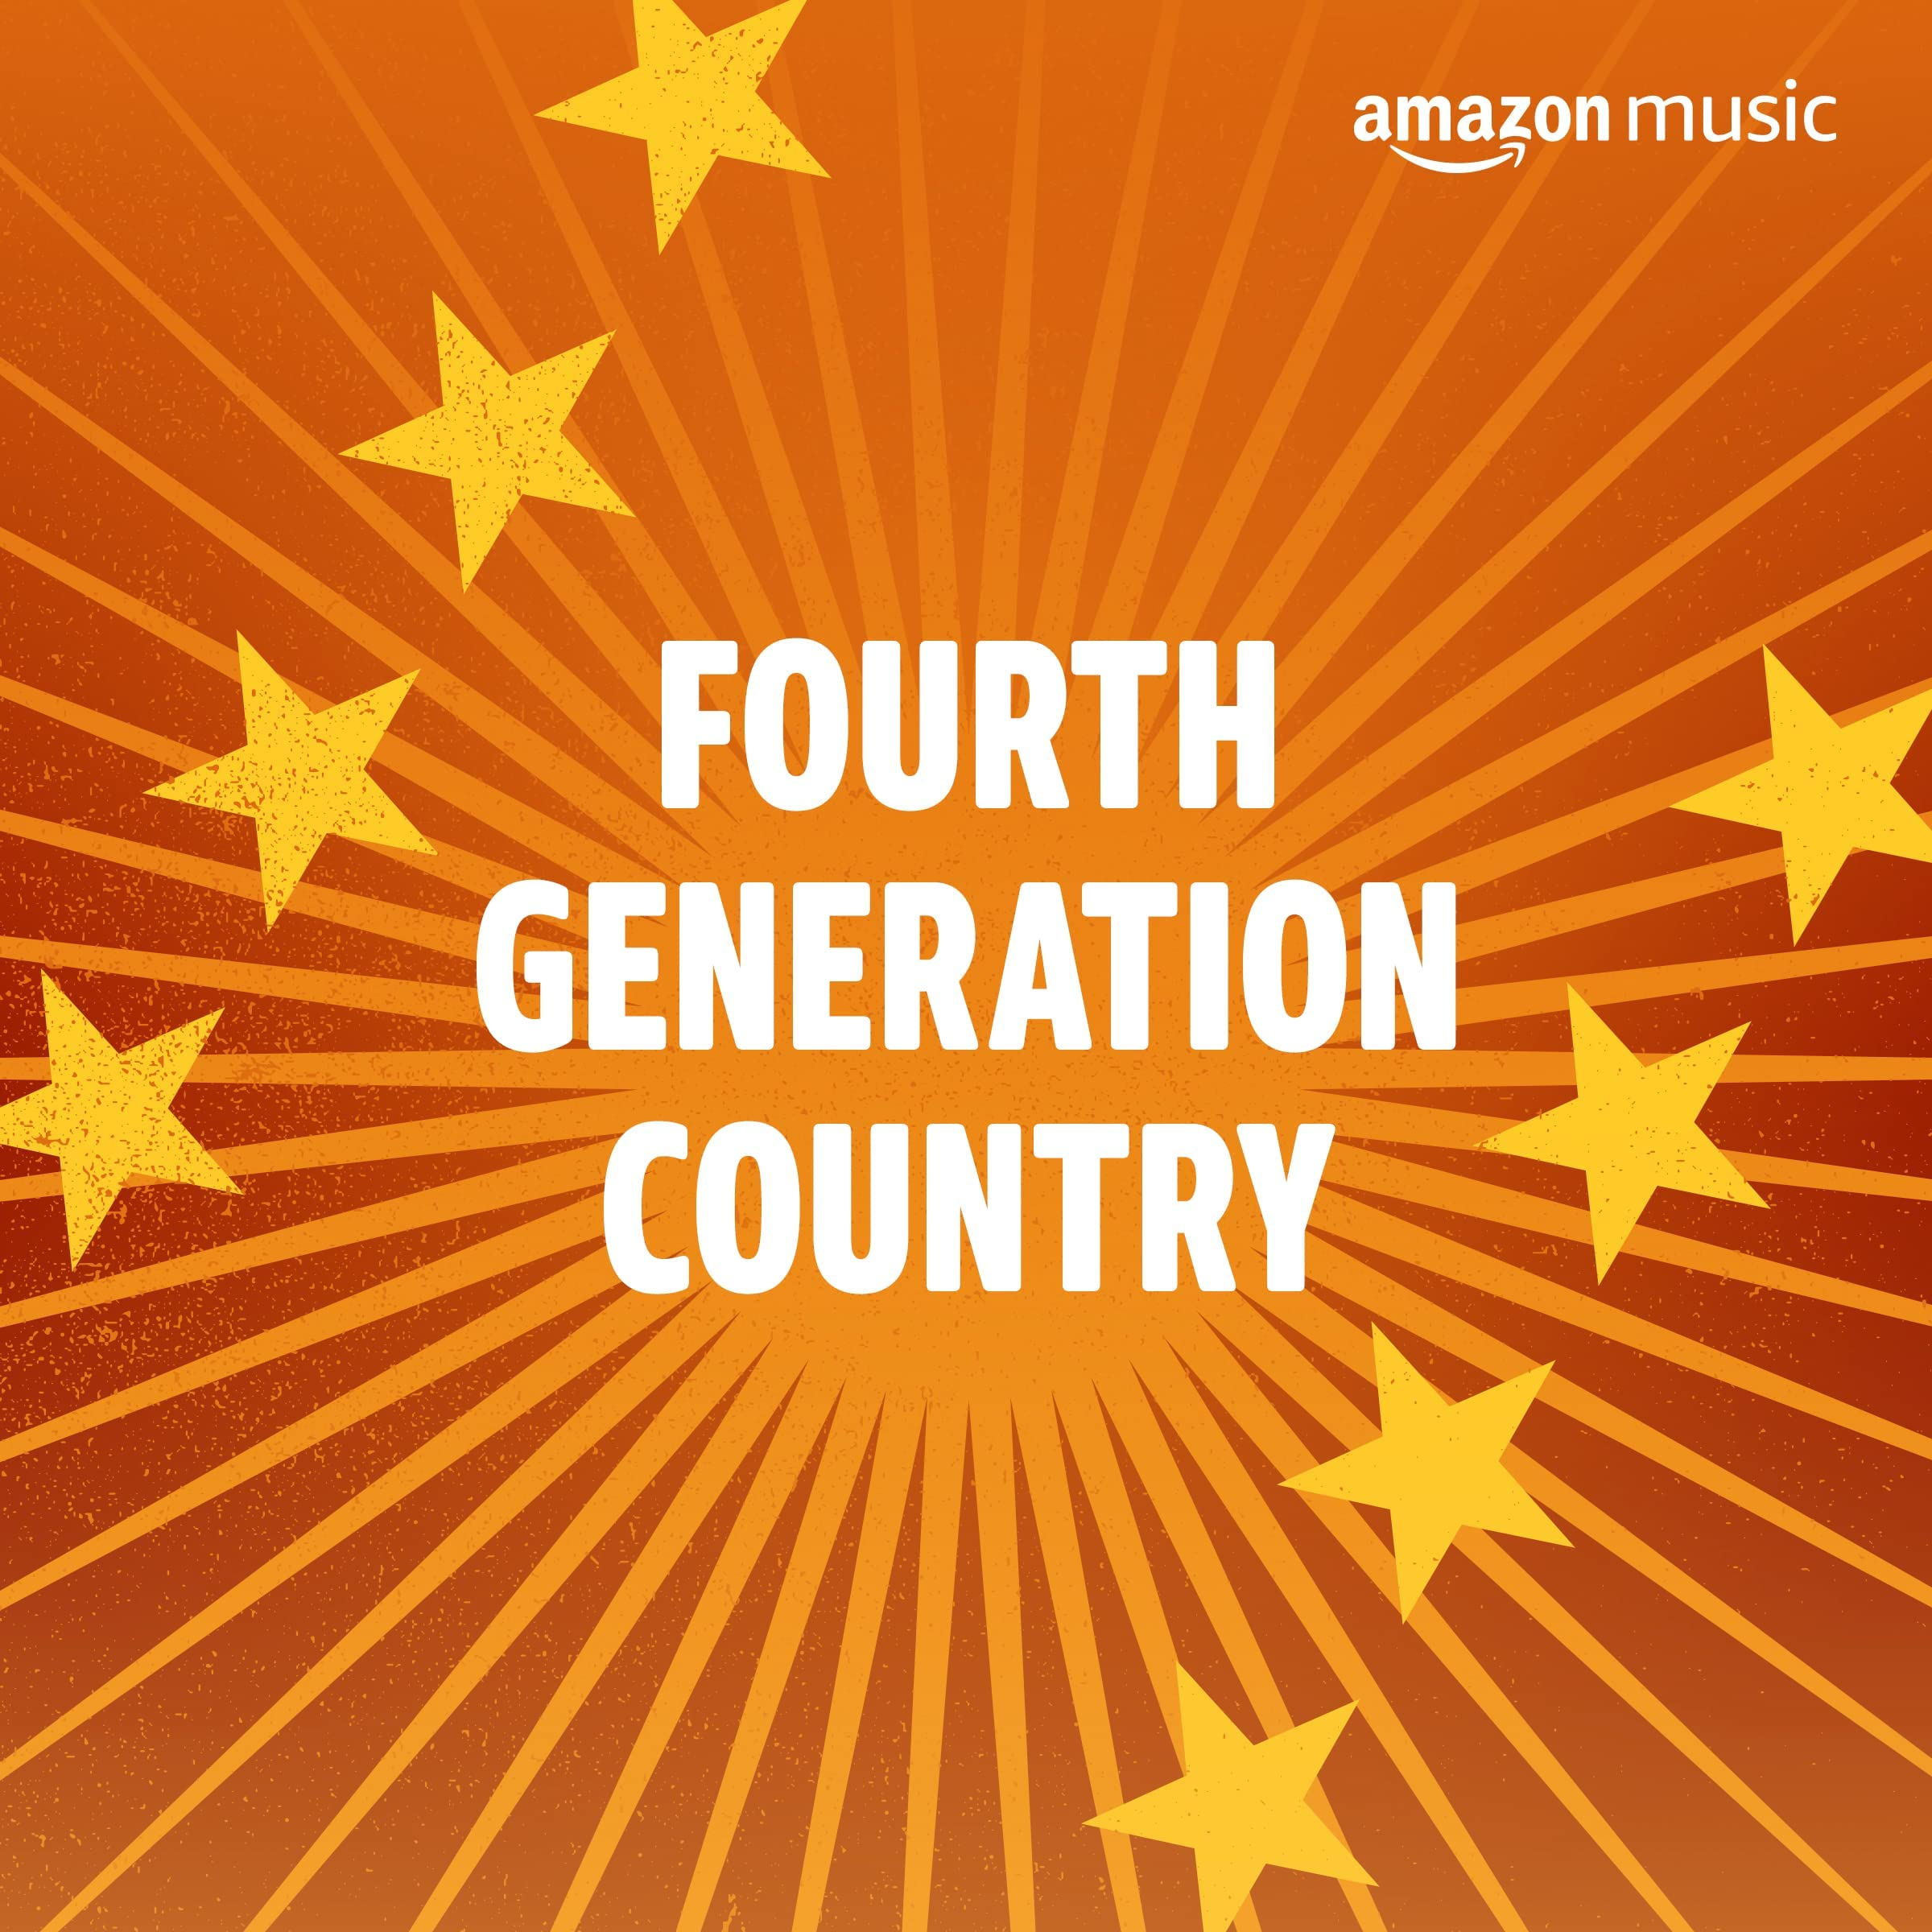 Fourth Generation Country